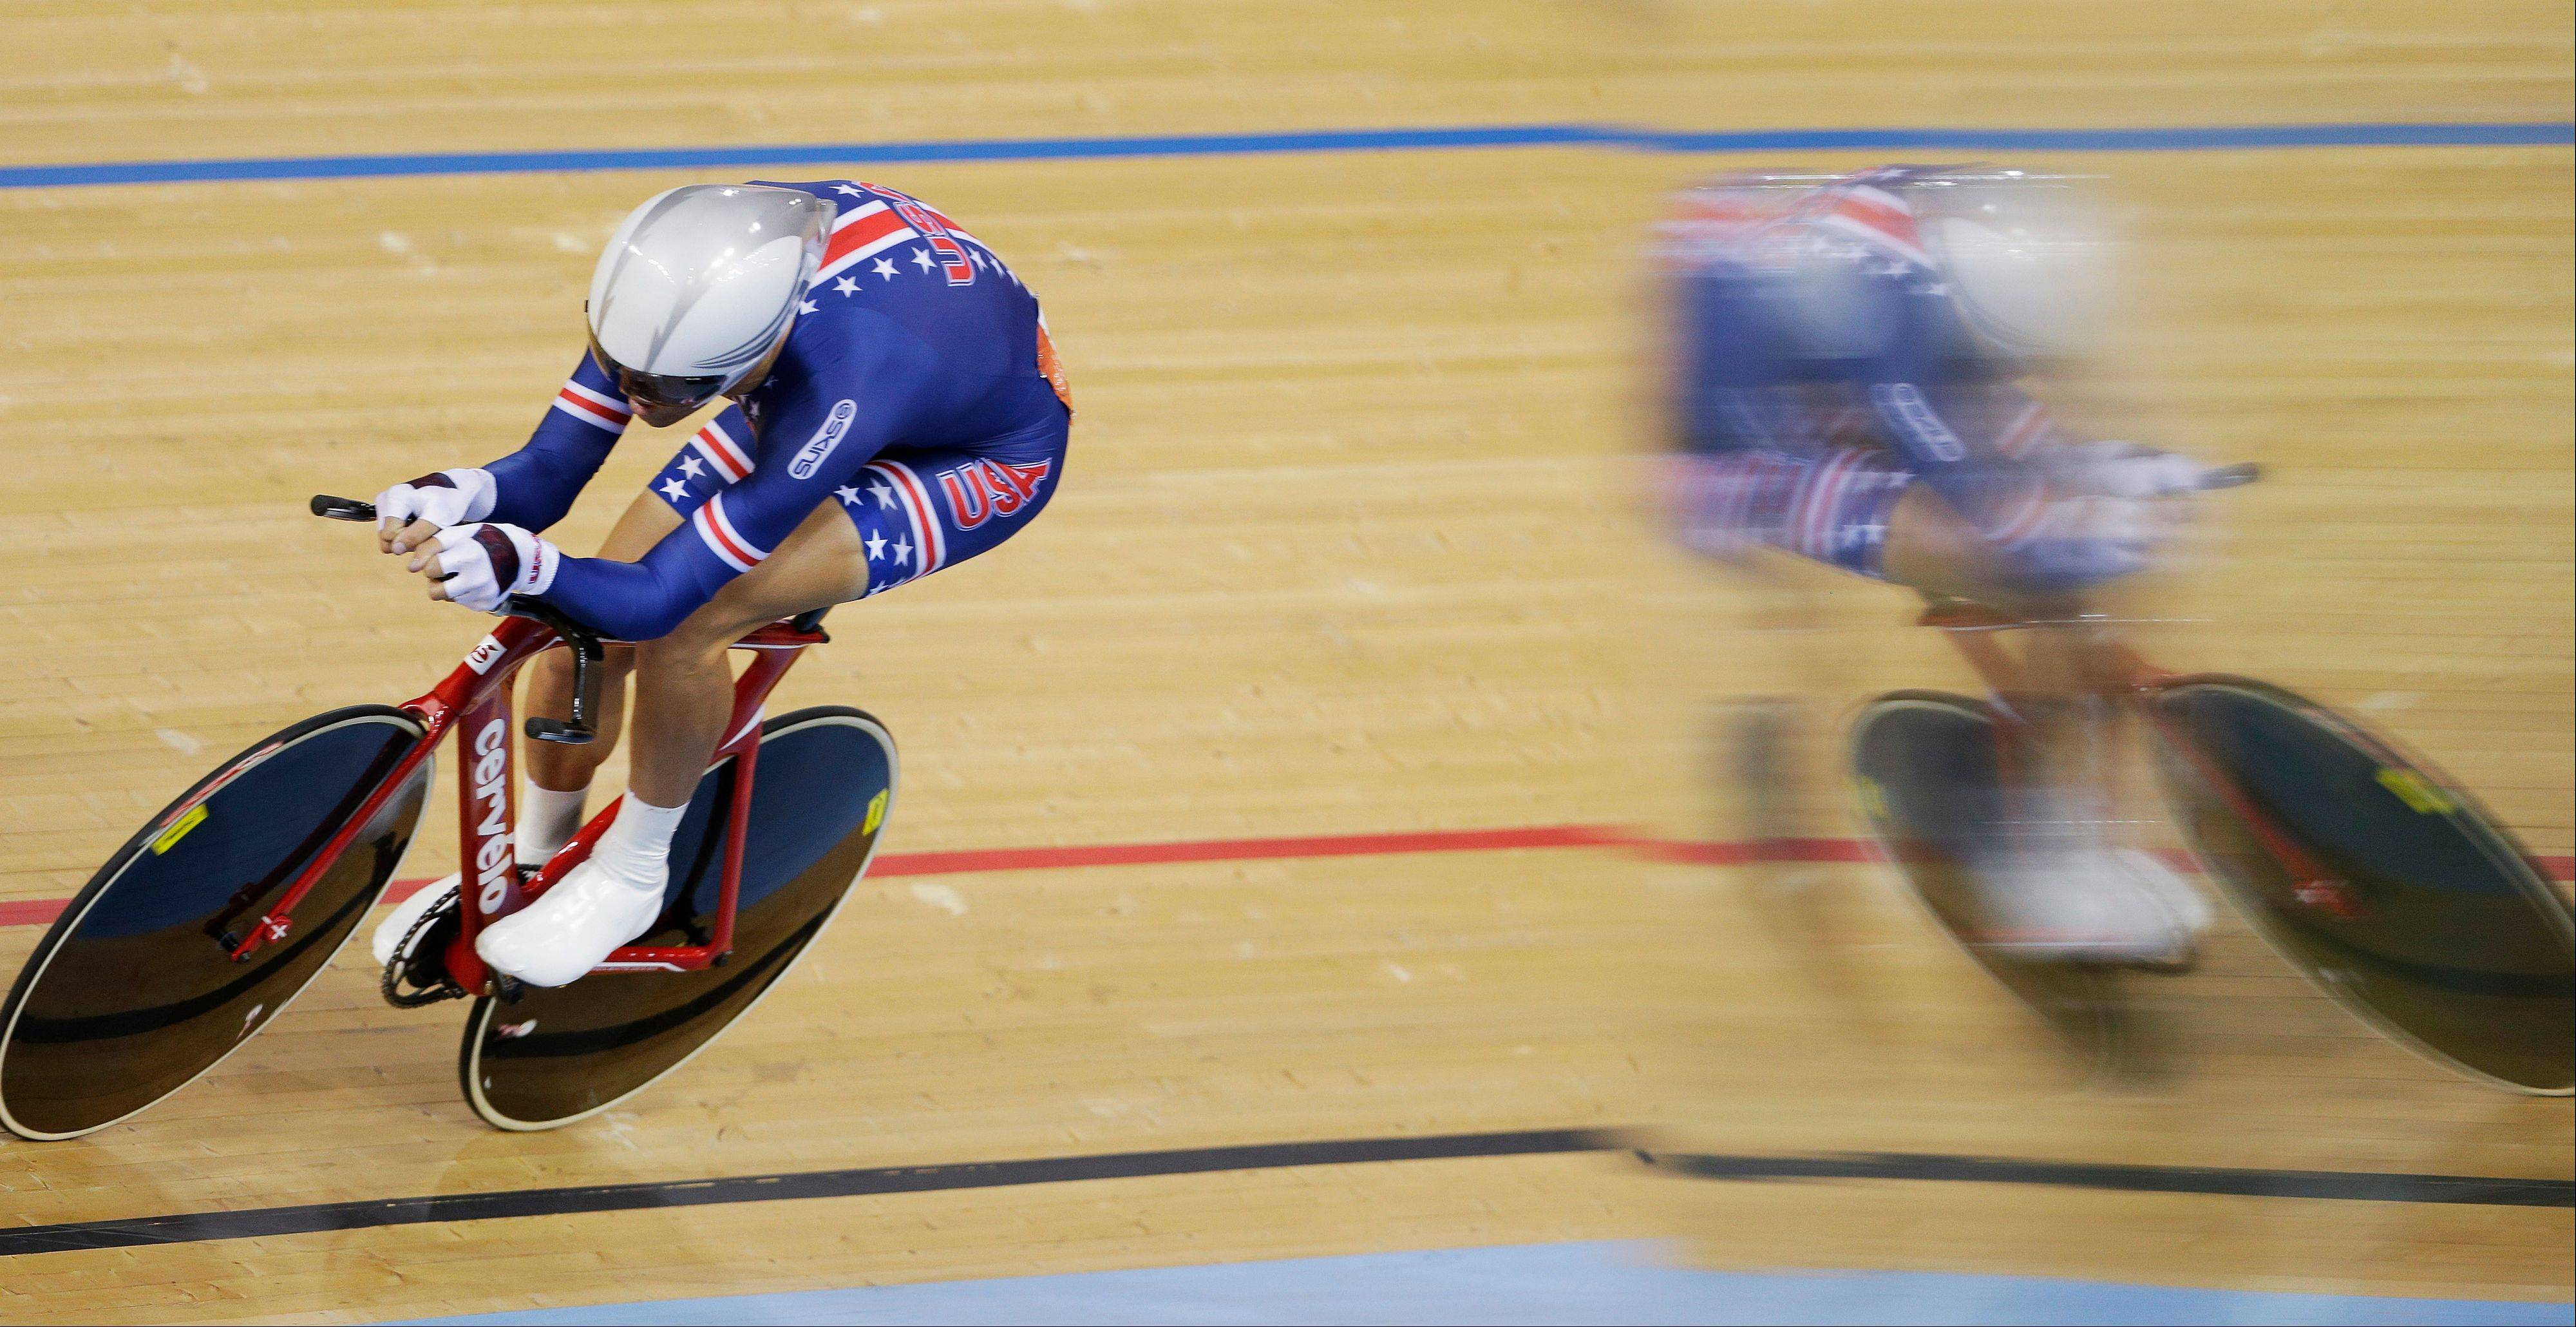 Bobby Lea of The United States competes in the track cycling men's omnium individual pursuit, during the 2012 Summer Olympics in London, Sunday, Aug. 5, 2012.